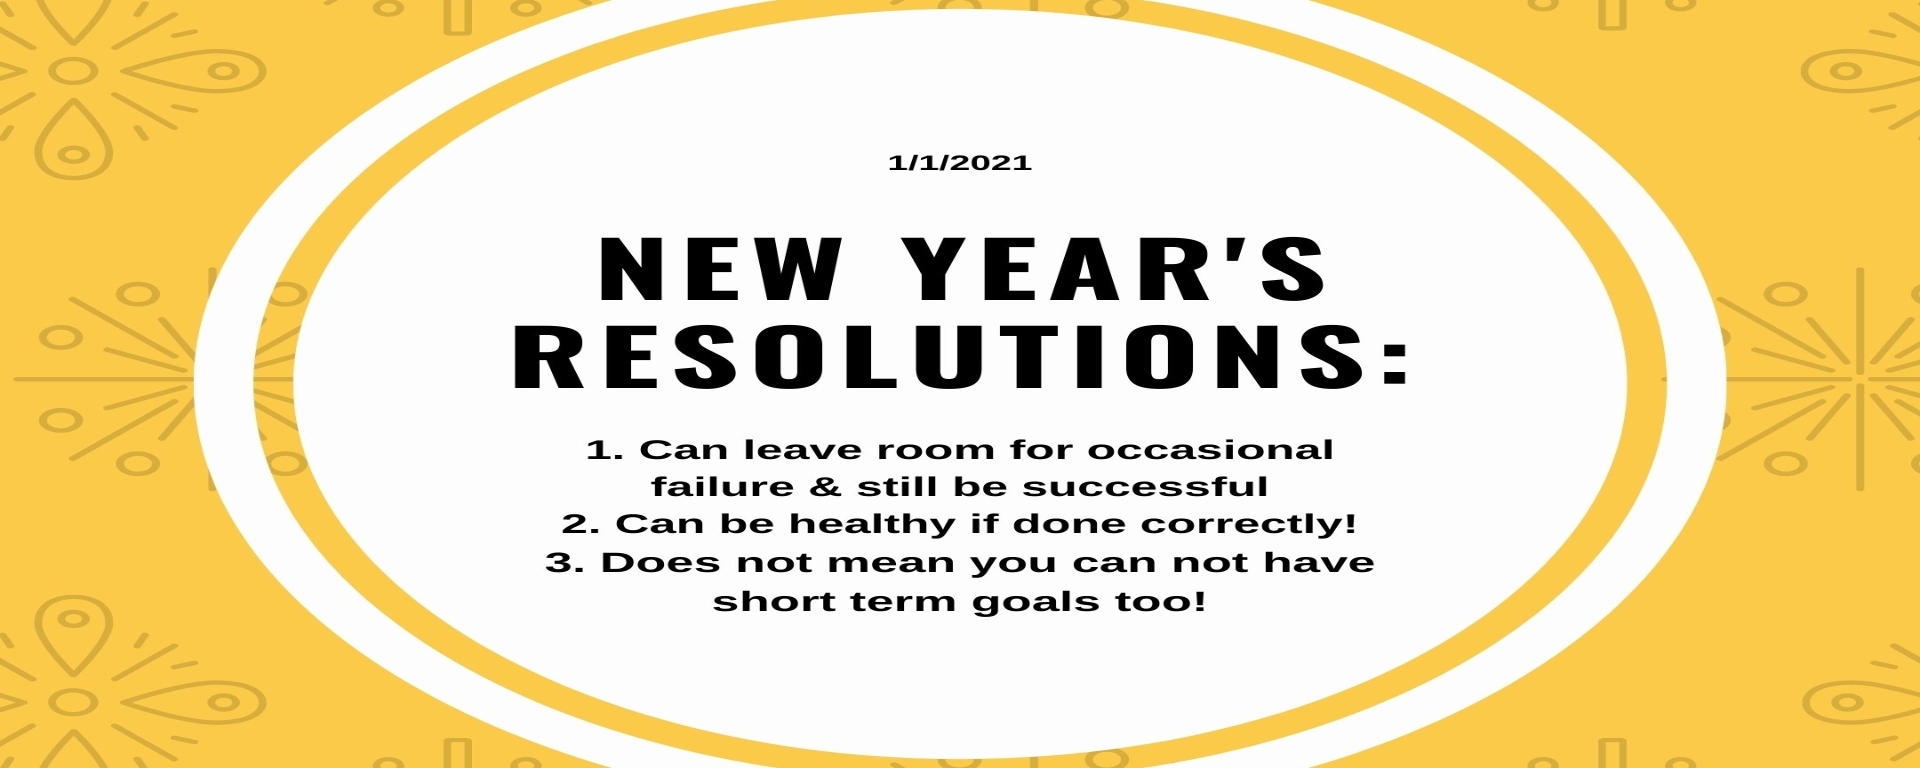 List made to look like a list of New Year's Resolutions that instead list facts about New Year's resolutions